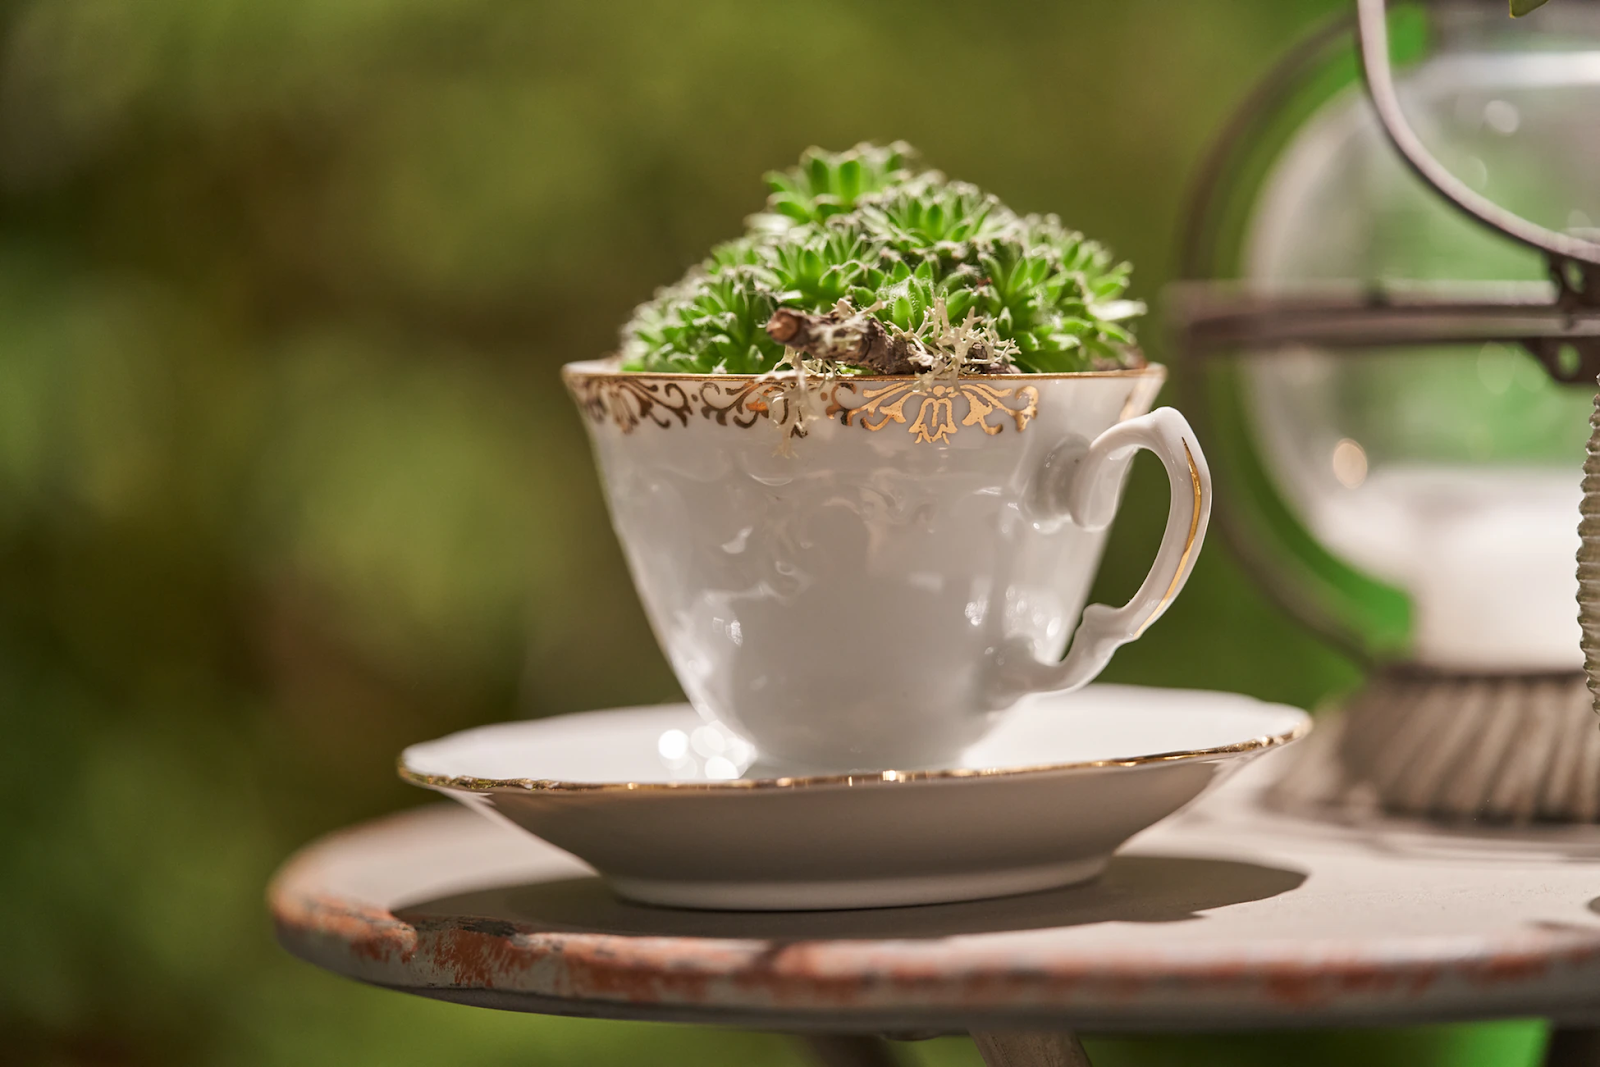 Succulent in a tea cup outside